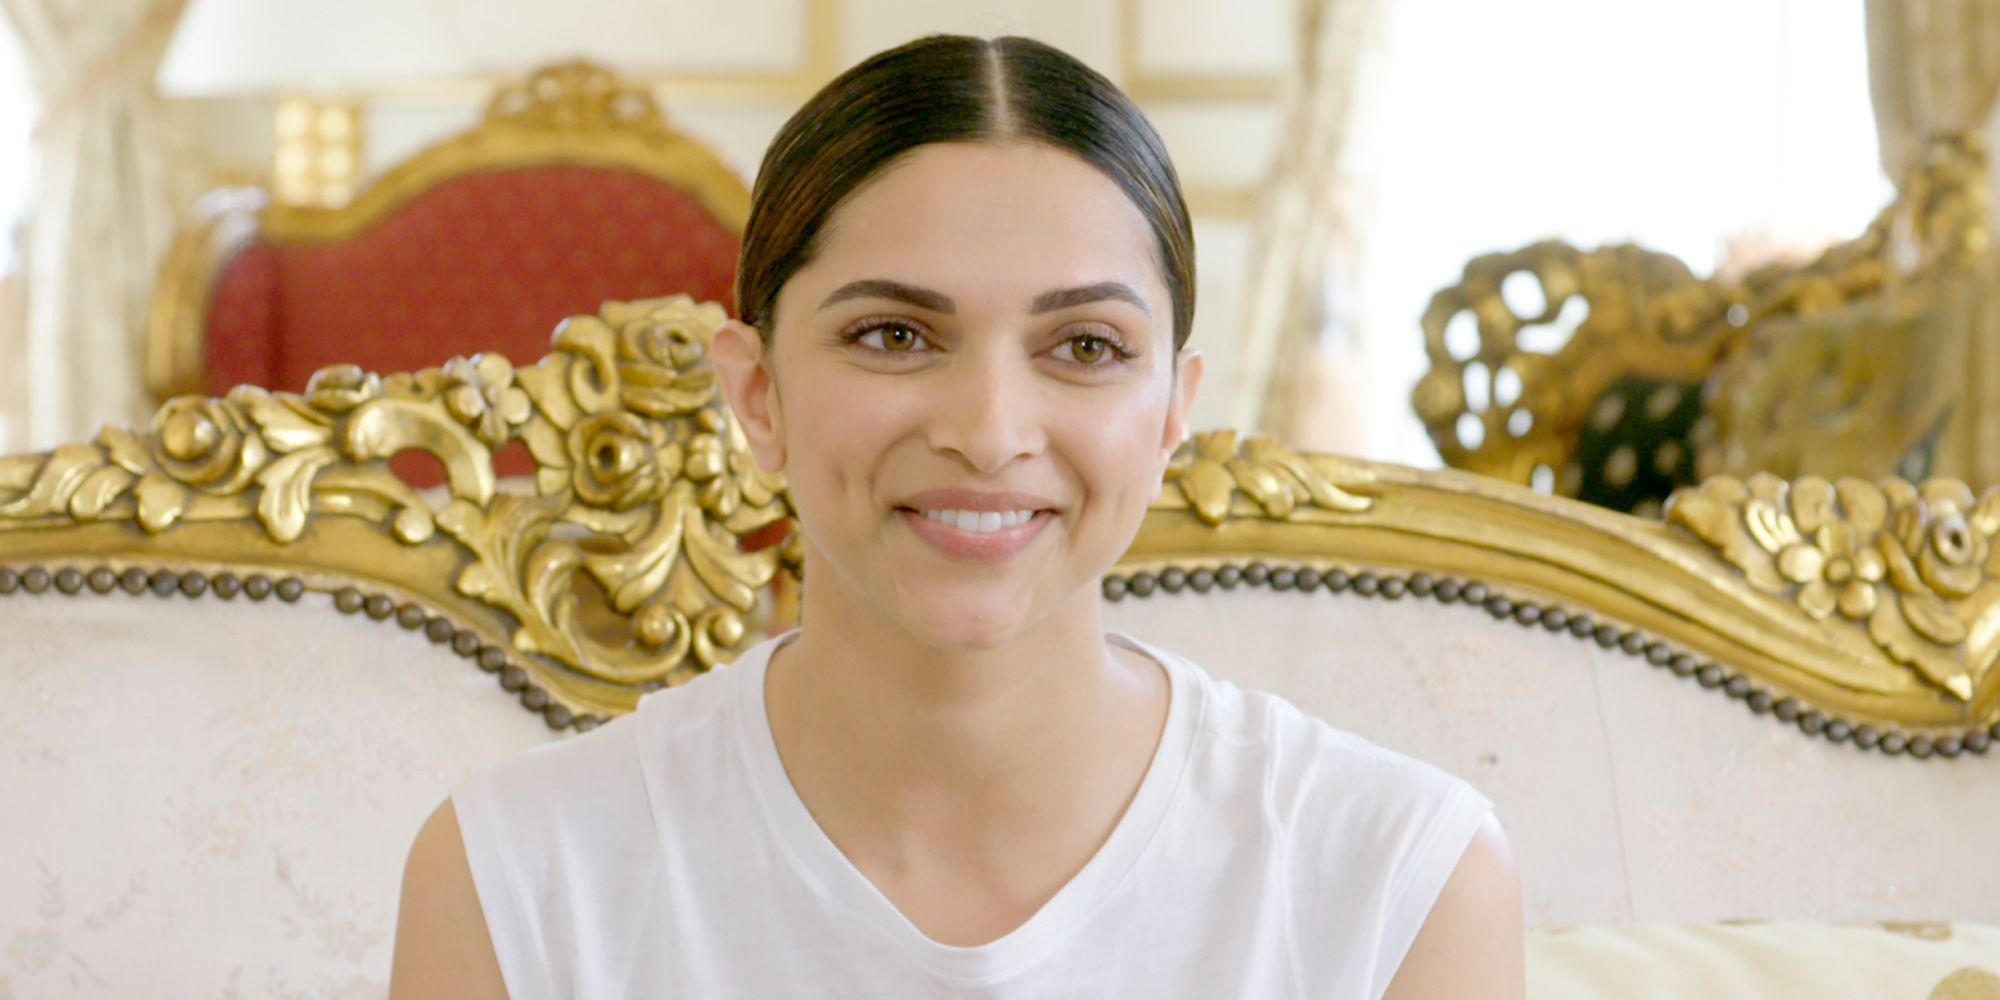 Deepika Padukone Landed Her First Movie Role Without Even Auditioning